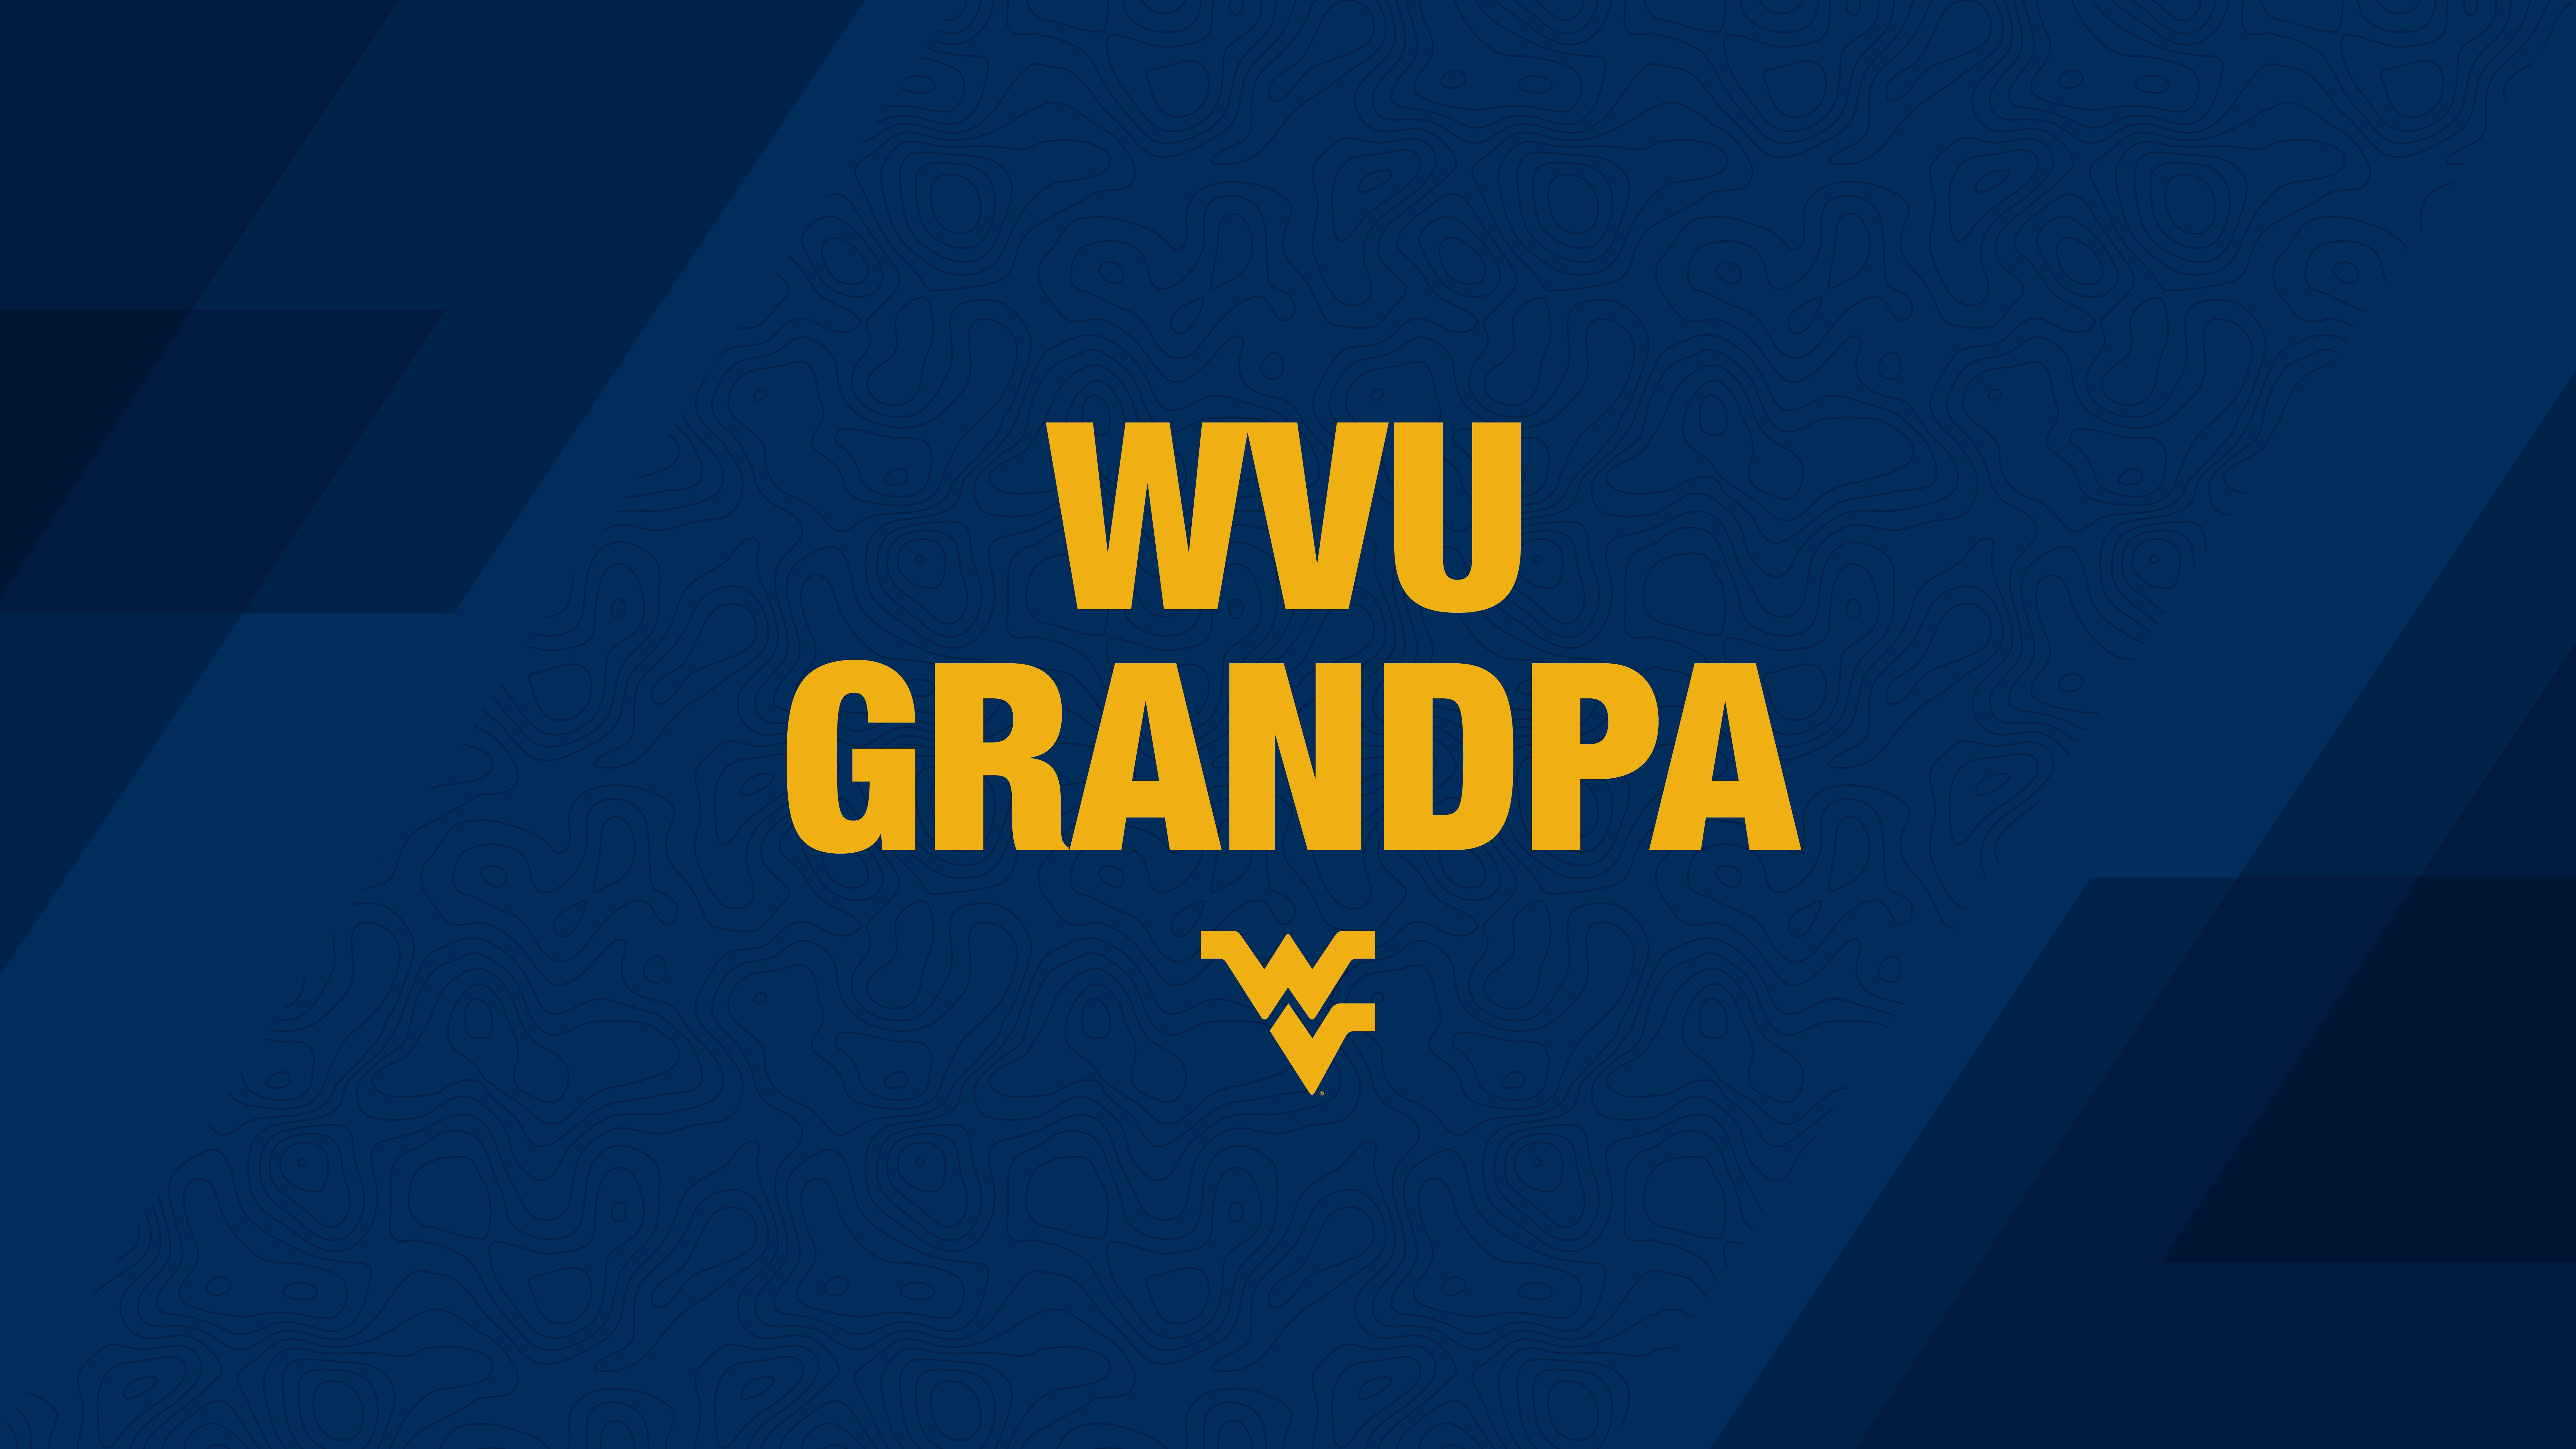 WVU Grandpa PC or tablet wallpaper